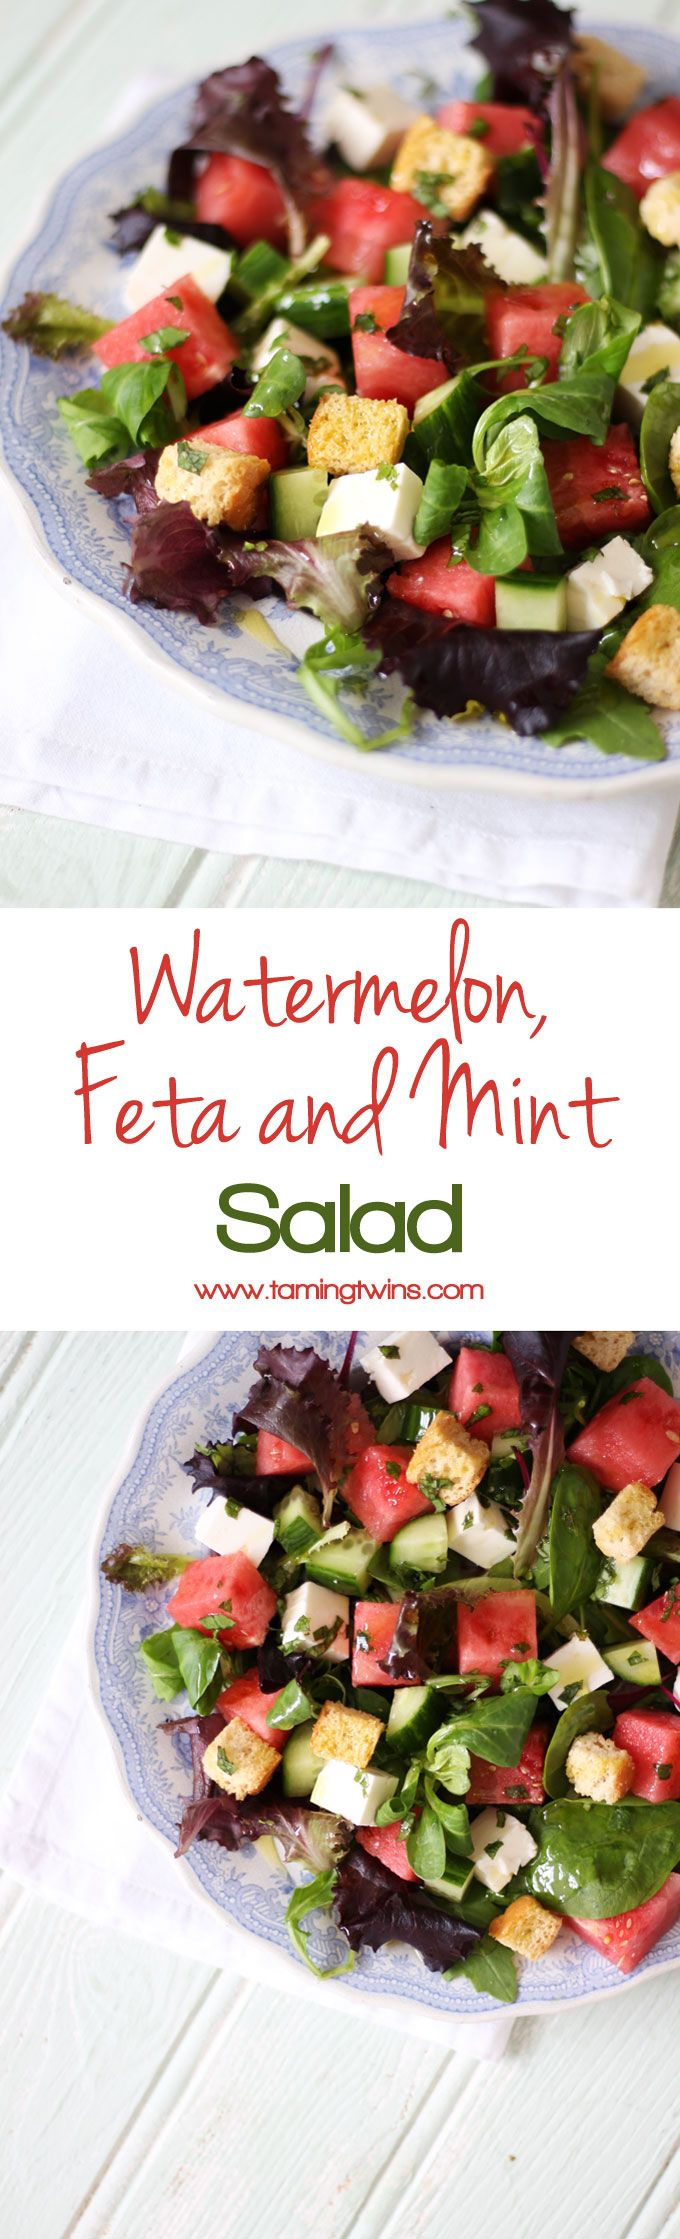 A feta, watermelon and mint salad with baby leaves and rocket. A light and delicious summer salad, with added croutons to make a meal of it. Perfect for an al fresco lunch or dinner. http://www.tamingtwins.com